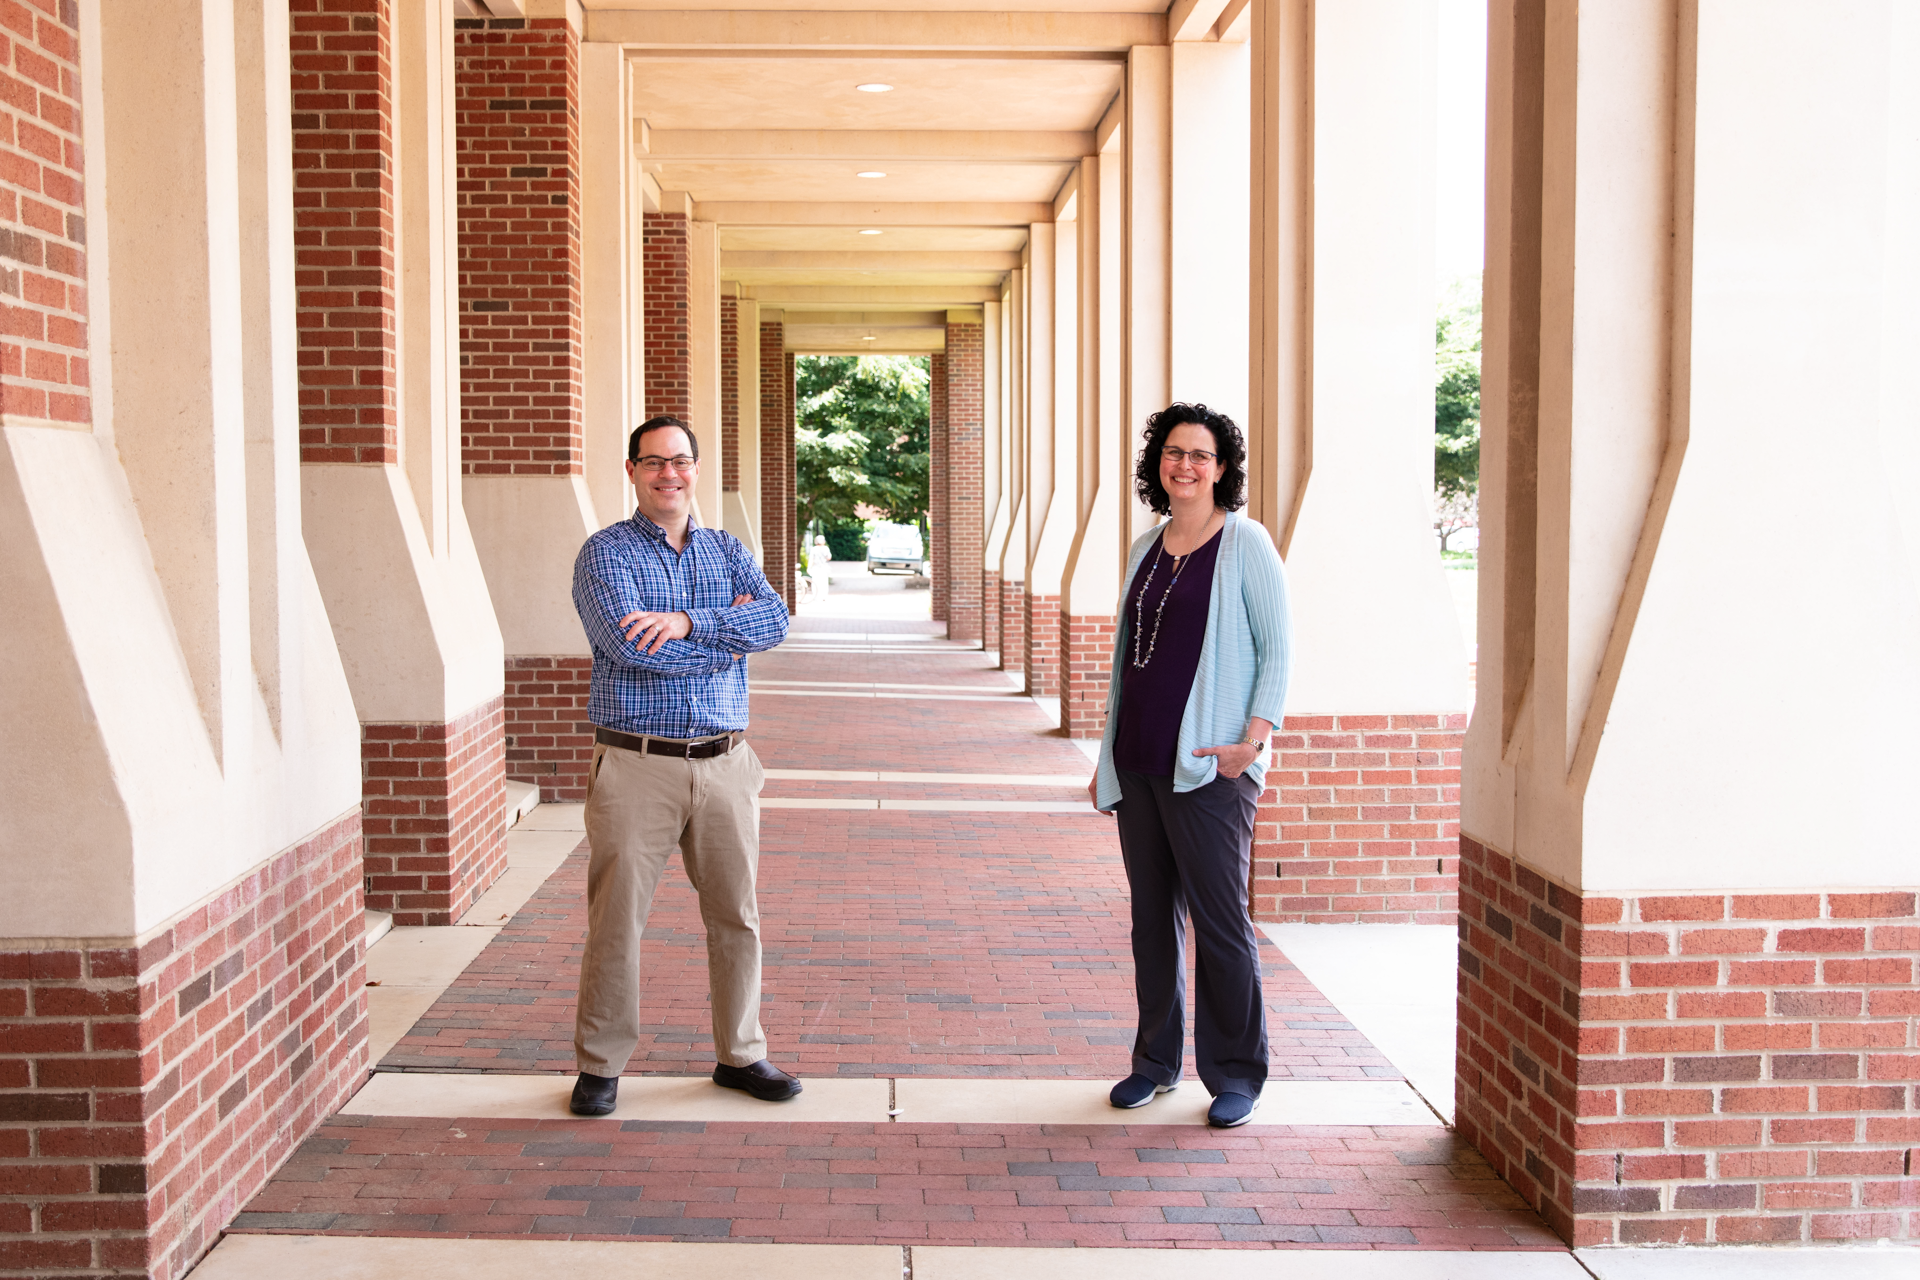 Brian Strahl and Samantha Pattenden stand outside by an academic building.